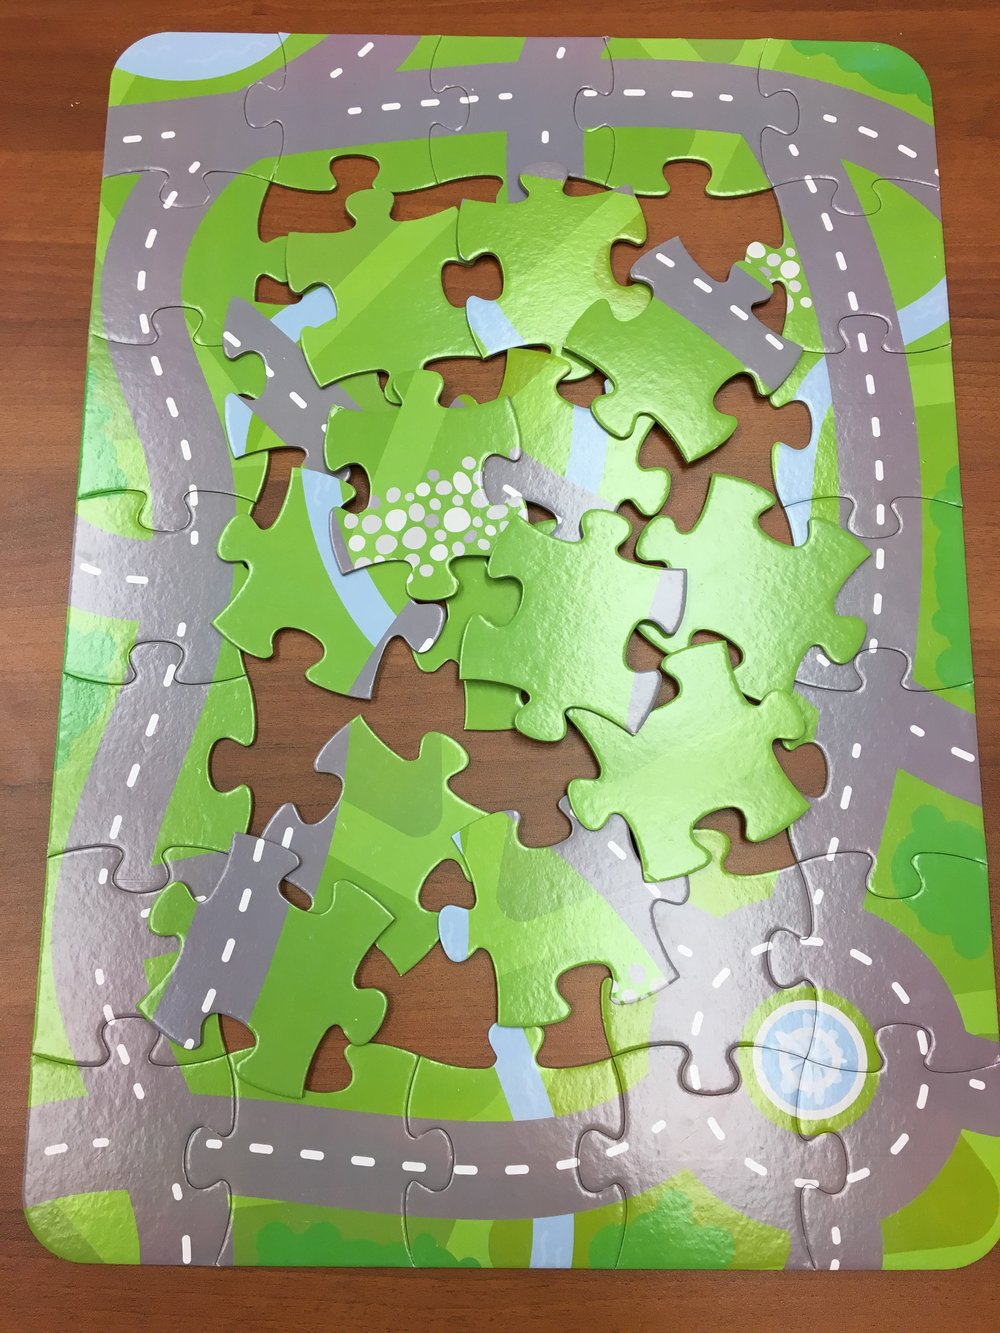 Children's Hospital of Pittsburgh of UPMC puzzle map